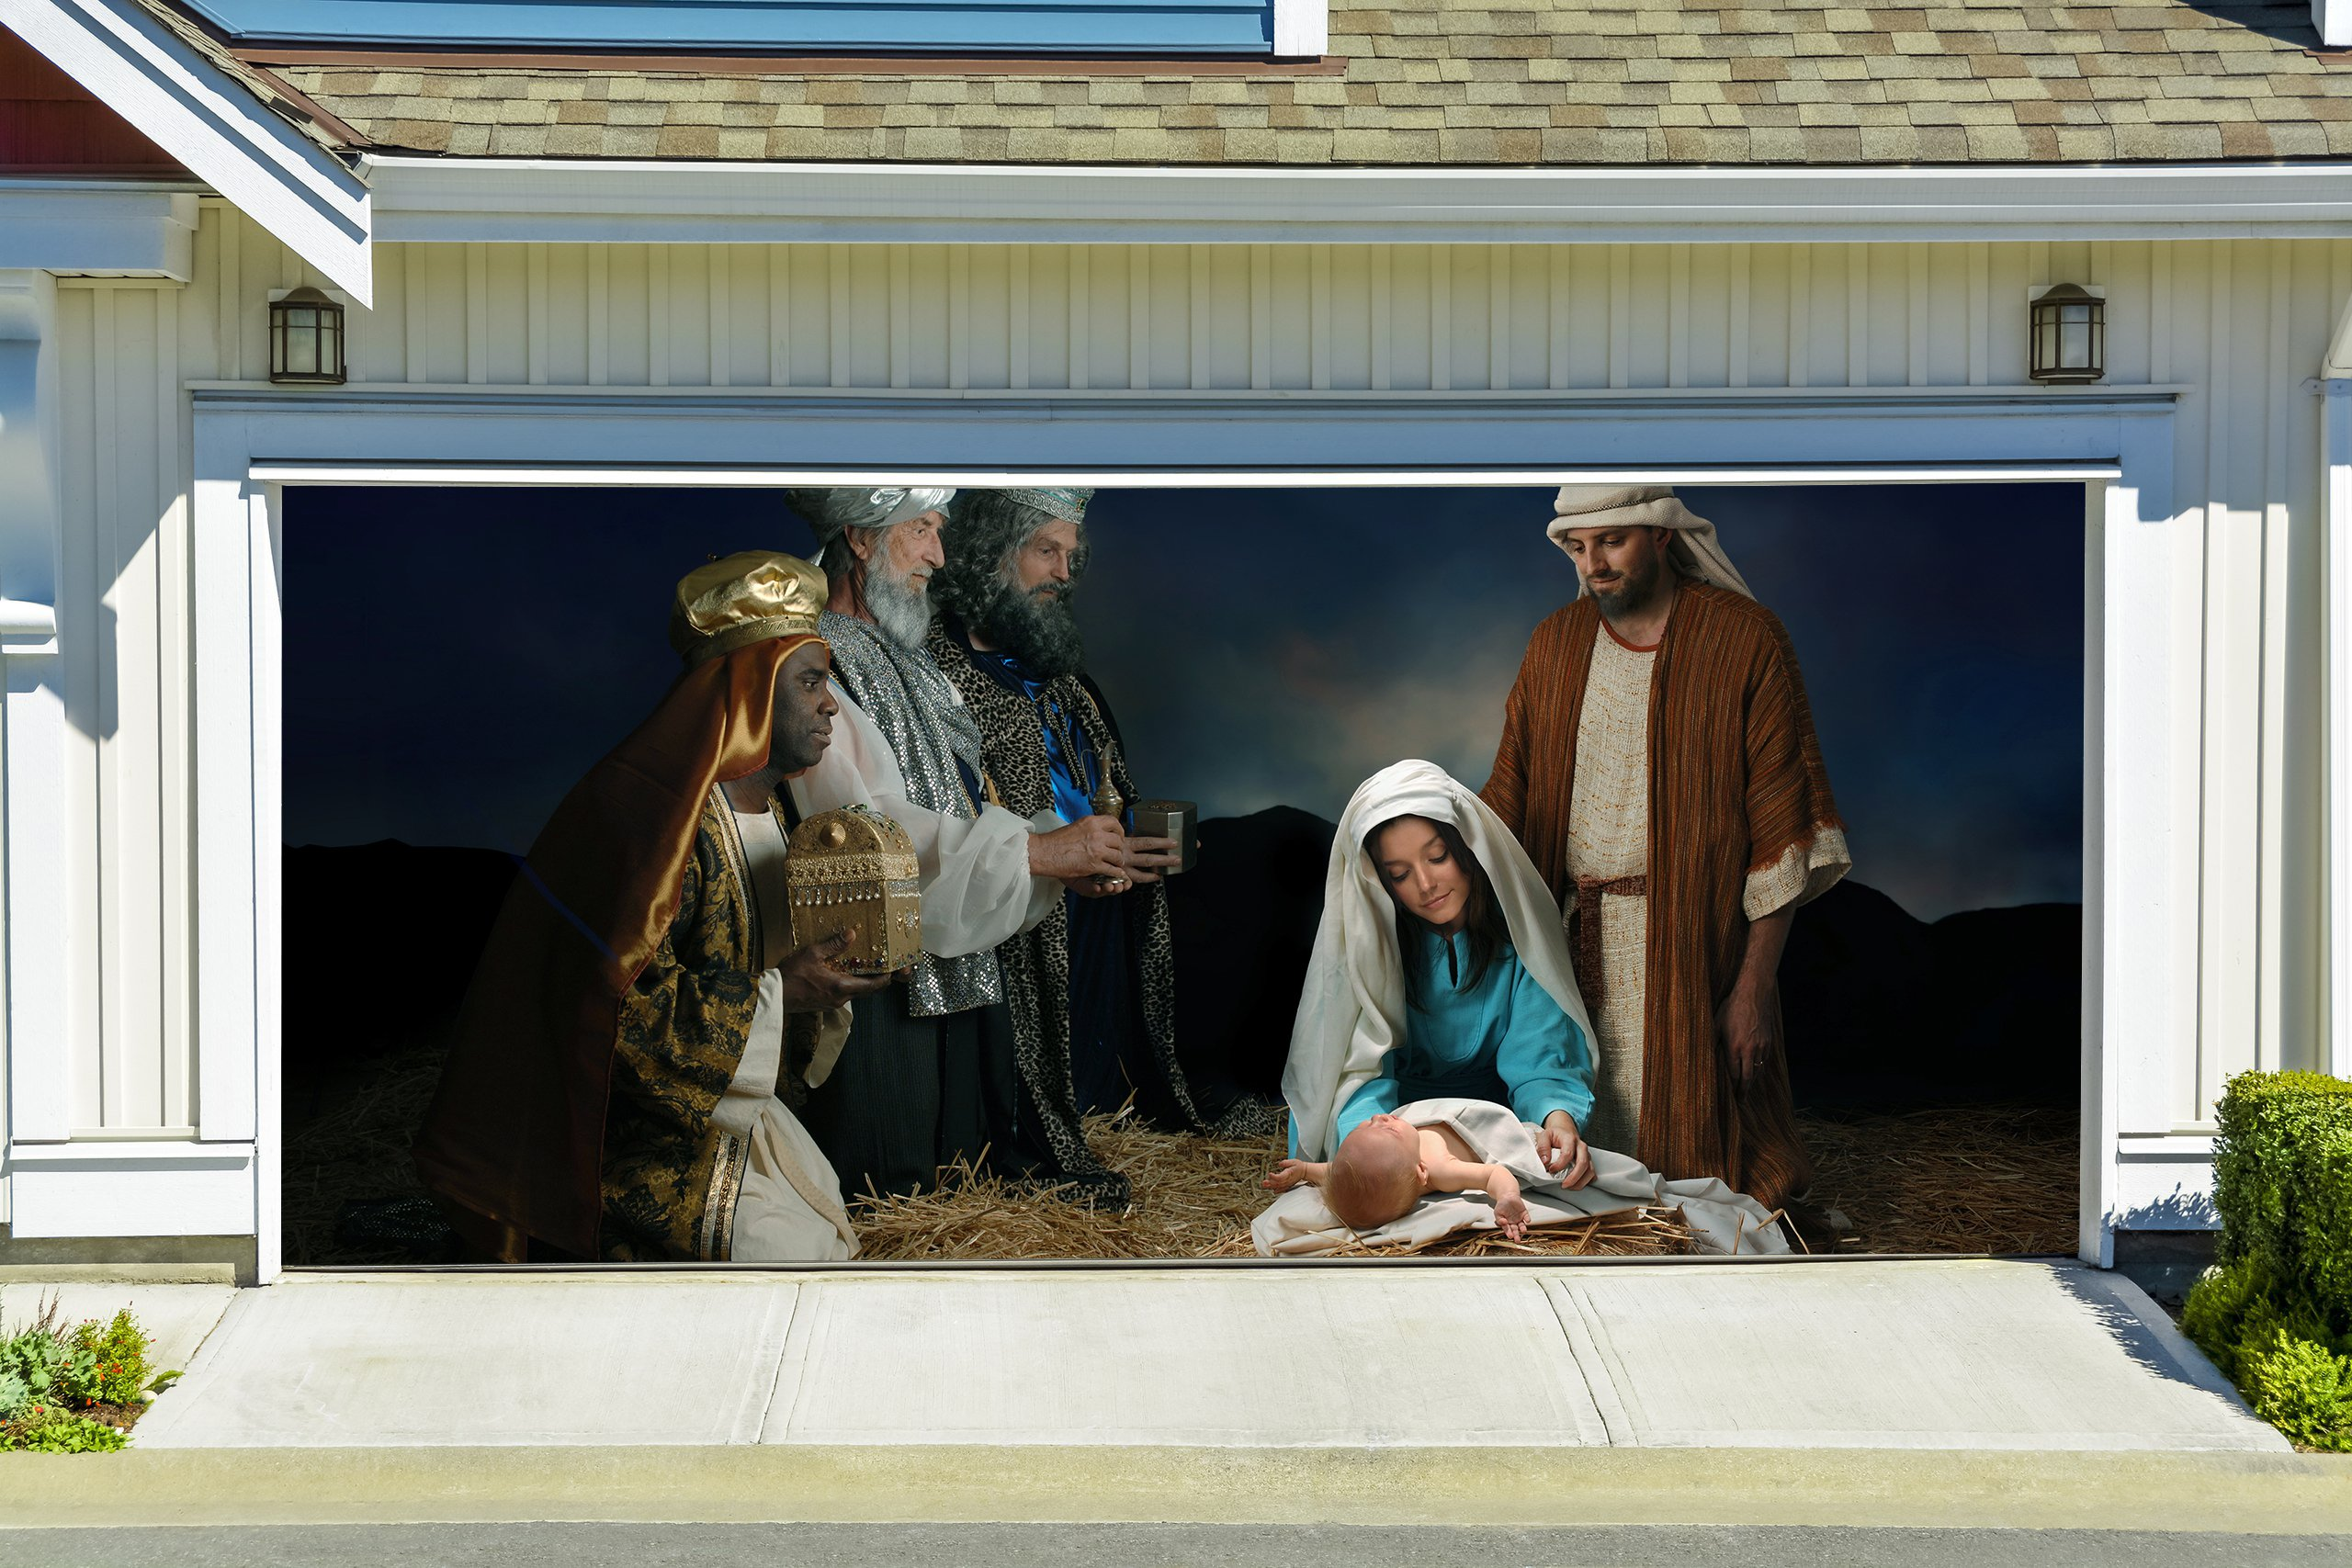 Jesus 3D Effect Christmas Nativity Scene Banners for 2 Car Garage Door Covers Outdoor Full Color House Billboard Garage Door Holiday Christmas Holy Night Decor Murals size 82x188 inches DAV215